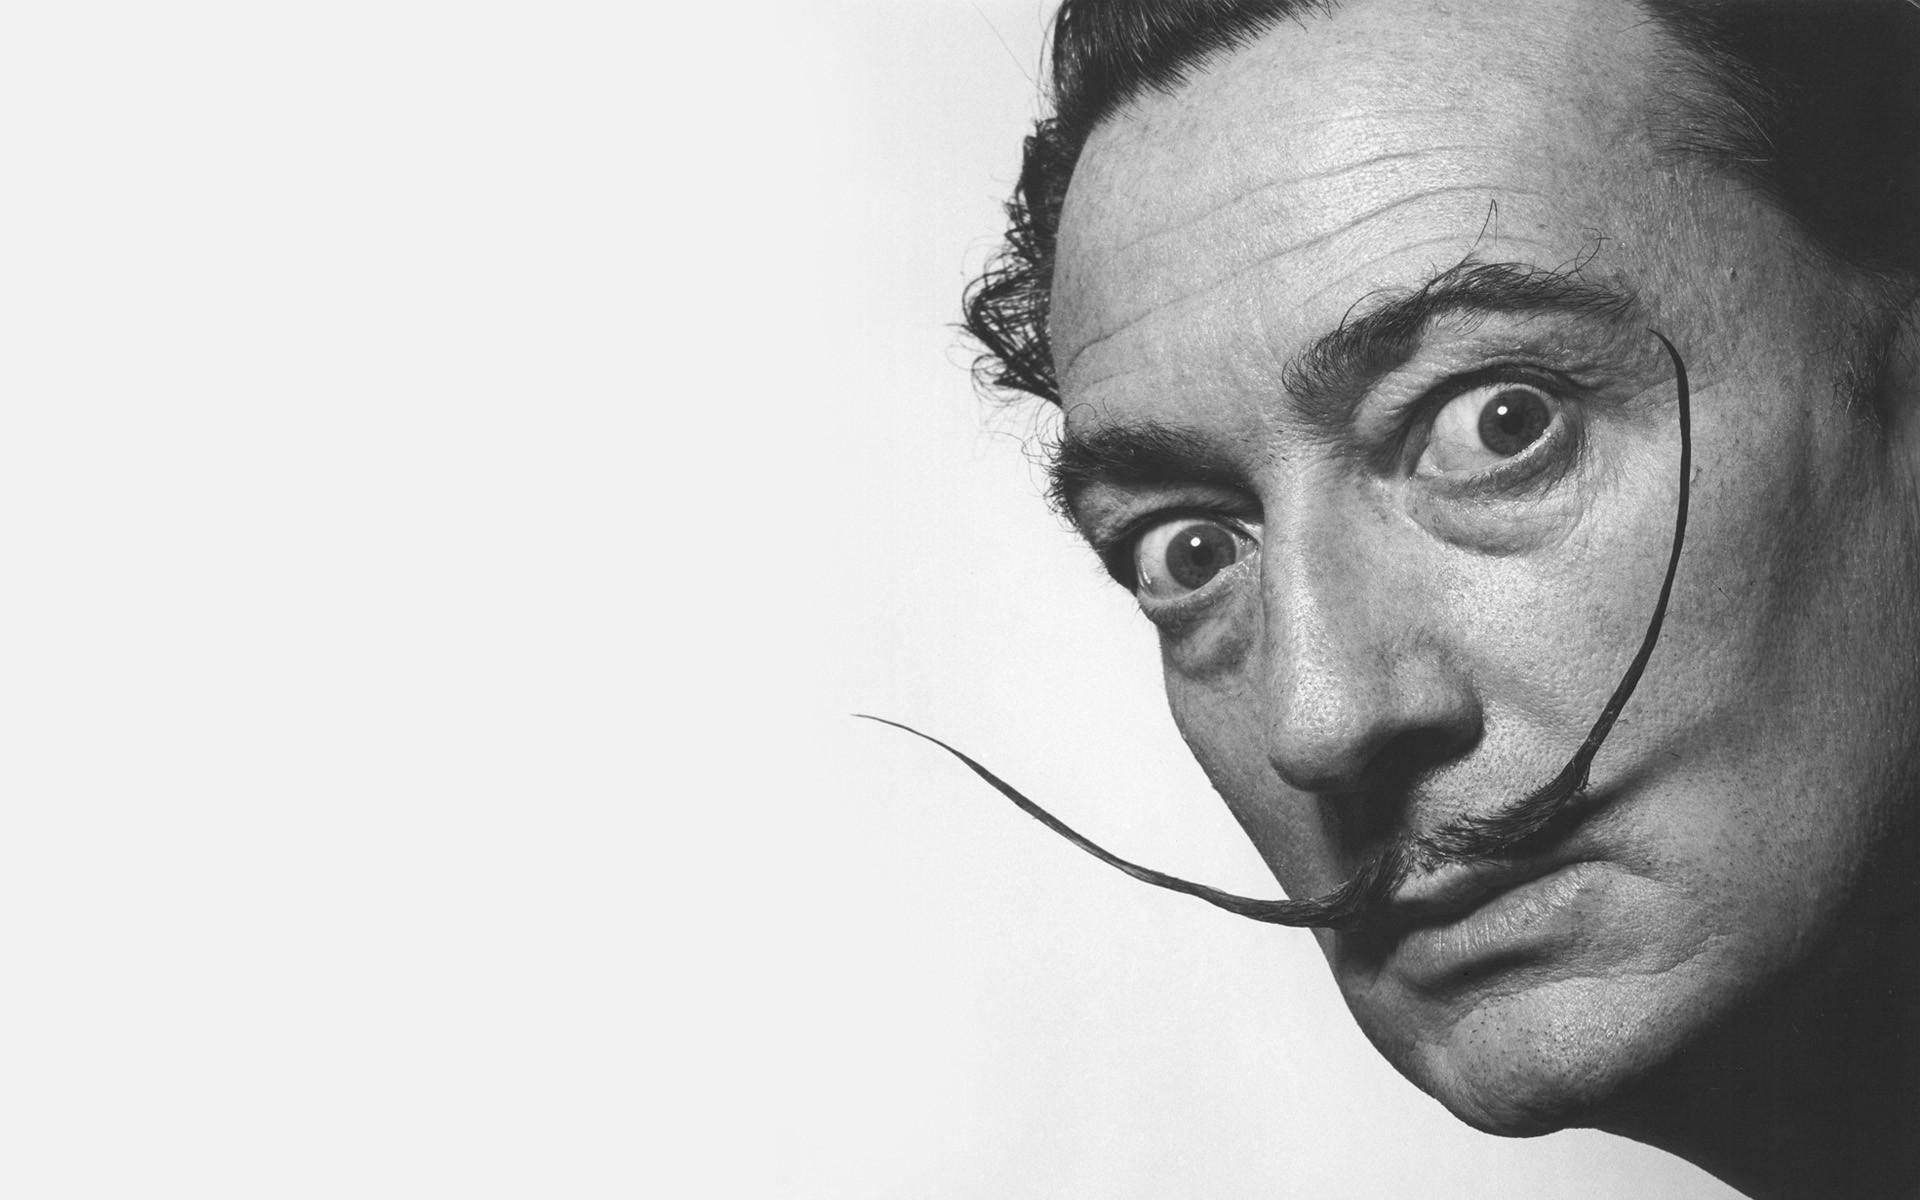 salvador dali wallpaper 183�� download free hd backgrounds